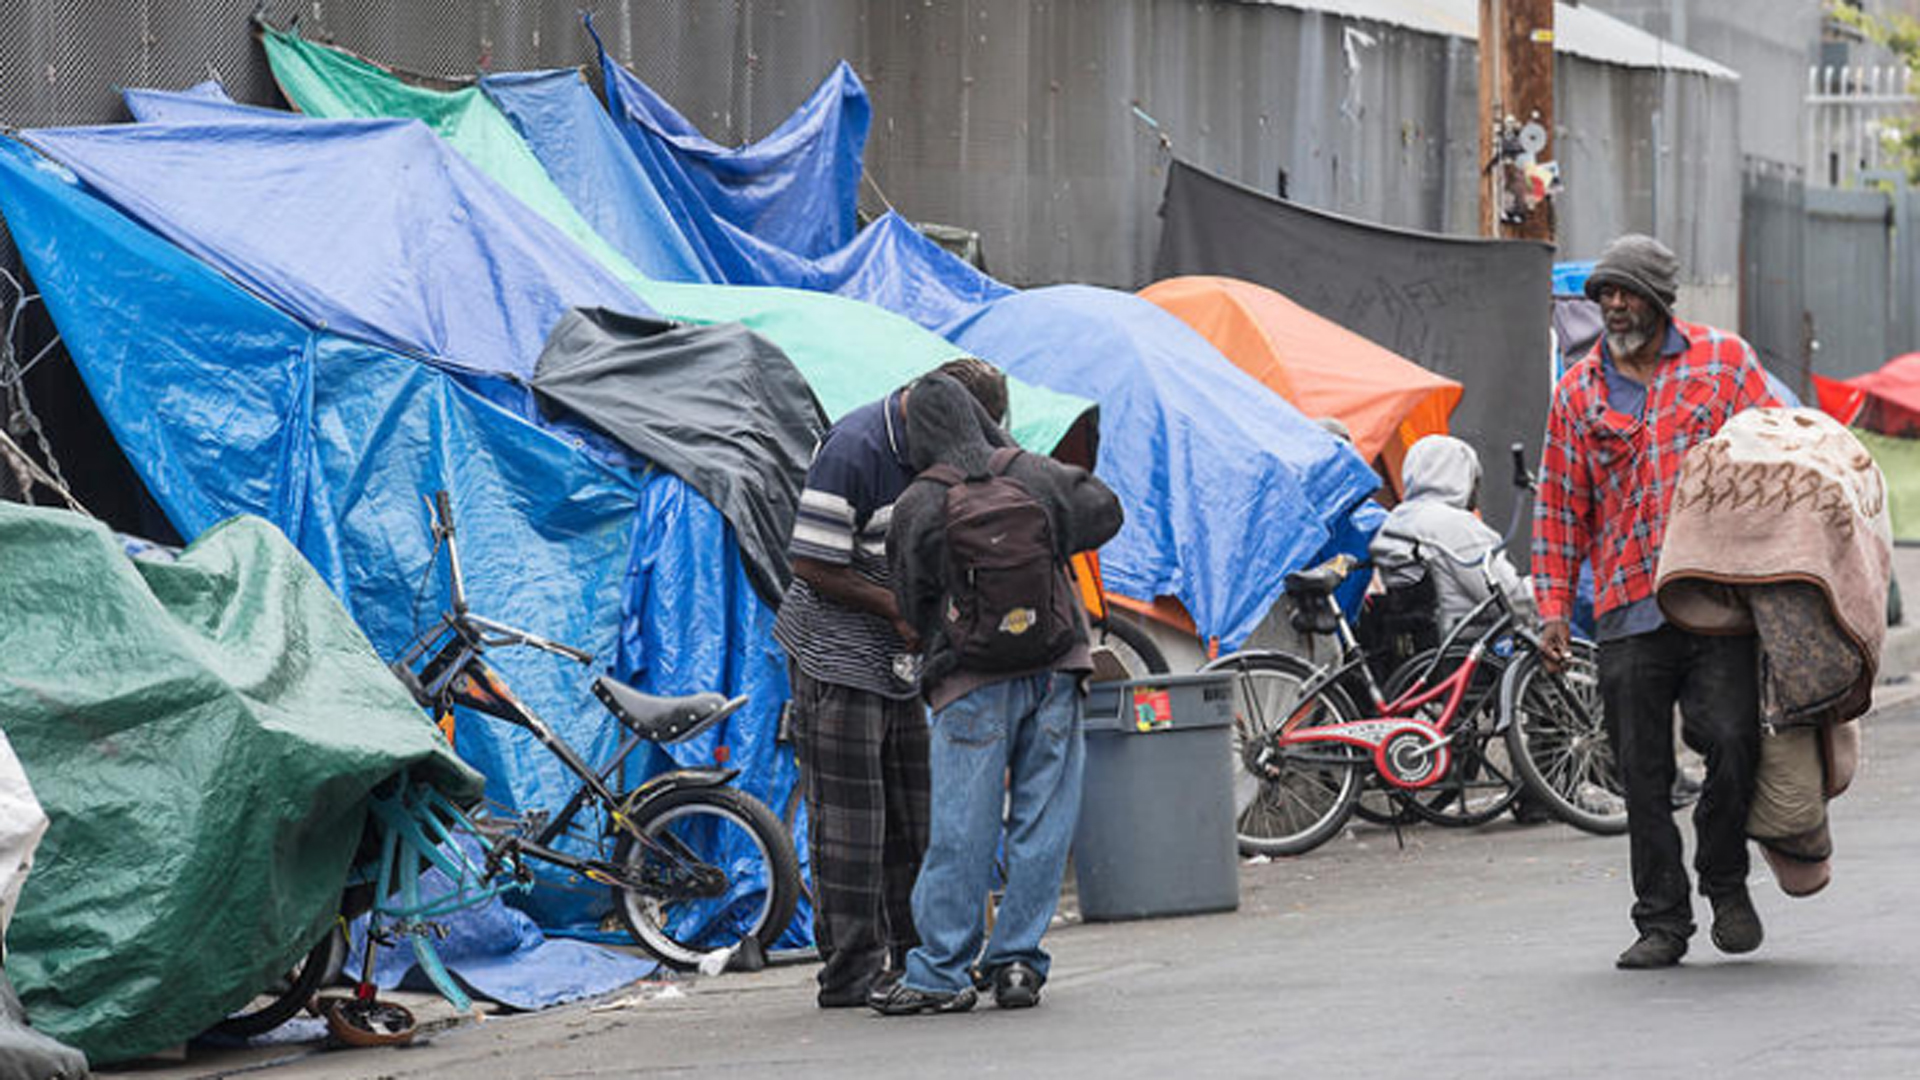 Homeless people set up tarps and tents in downtown Los Angeles' Skid Row in May 2016. (Credit: Brian van der Brug / Los Angeles Times)